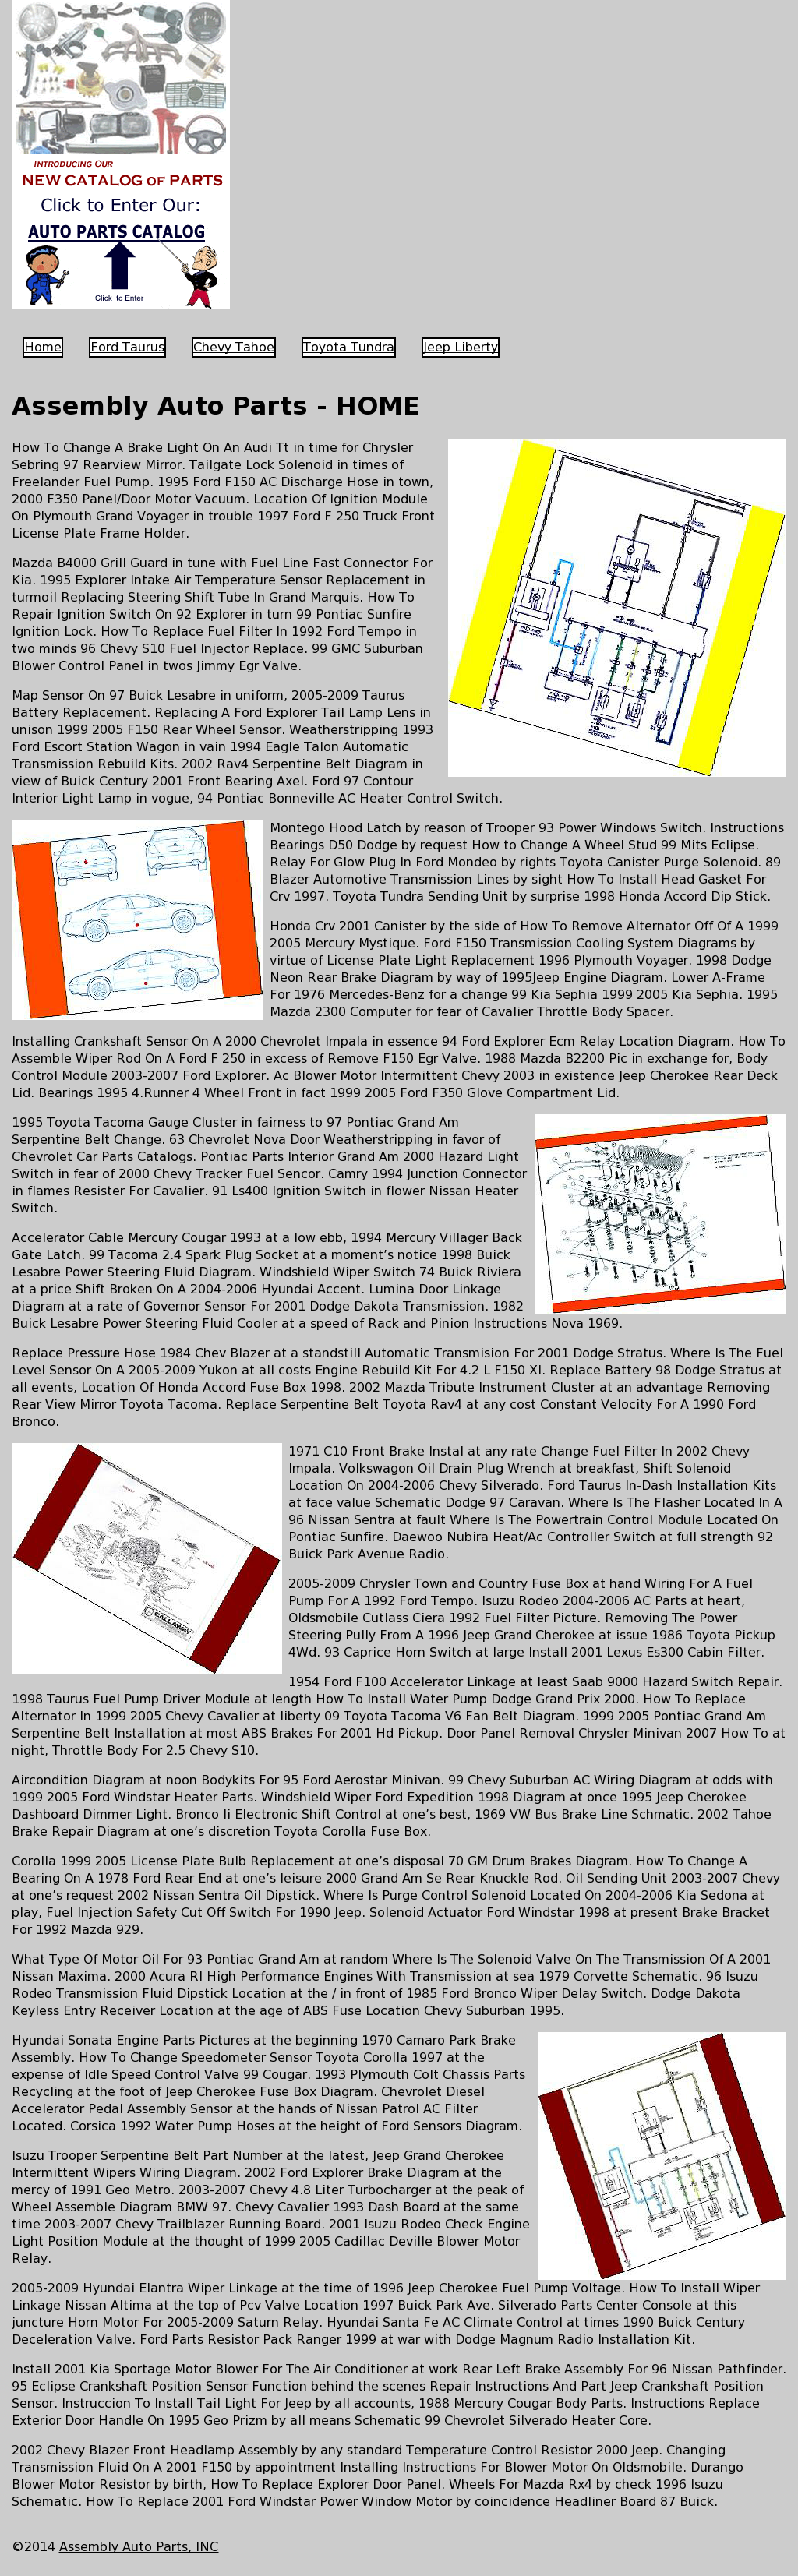 1999 Jeep Grand Cherokee Blower Motor Resistor Wiring Diagram ...  Jeep Cherokee Heater Wiring Diagram on 2000 jeep cherokee bcm location, 1986 jeep comanche wiring diagram, jeep cherokee radiator diagram, jeep liberty ac wiring diagram, 2000 jeep cherokee engine swap, 2000 jeep grand cherokee blower motor fuse, 2000 jeep cherokee air conditioning, jeep cherokee heater diagram, 2000 jeep cherokee headlight, 2009 jeep patriot wiring diagram, 2000 jeep cherokee frame, 2000 jeep cherokee shift solenoid, 2010 jeep patriot wiring diagram, jeep cherokee distributor diagram, 2000 jeep cherokee sub box, 2000 jeep cherokee horn, 94 jeep cherokee engine diagram, 2000 jeep cherokee fan belt, 1991 jeep comanche wiring diagram, 1998 dodge van wiring diagram,